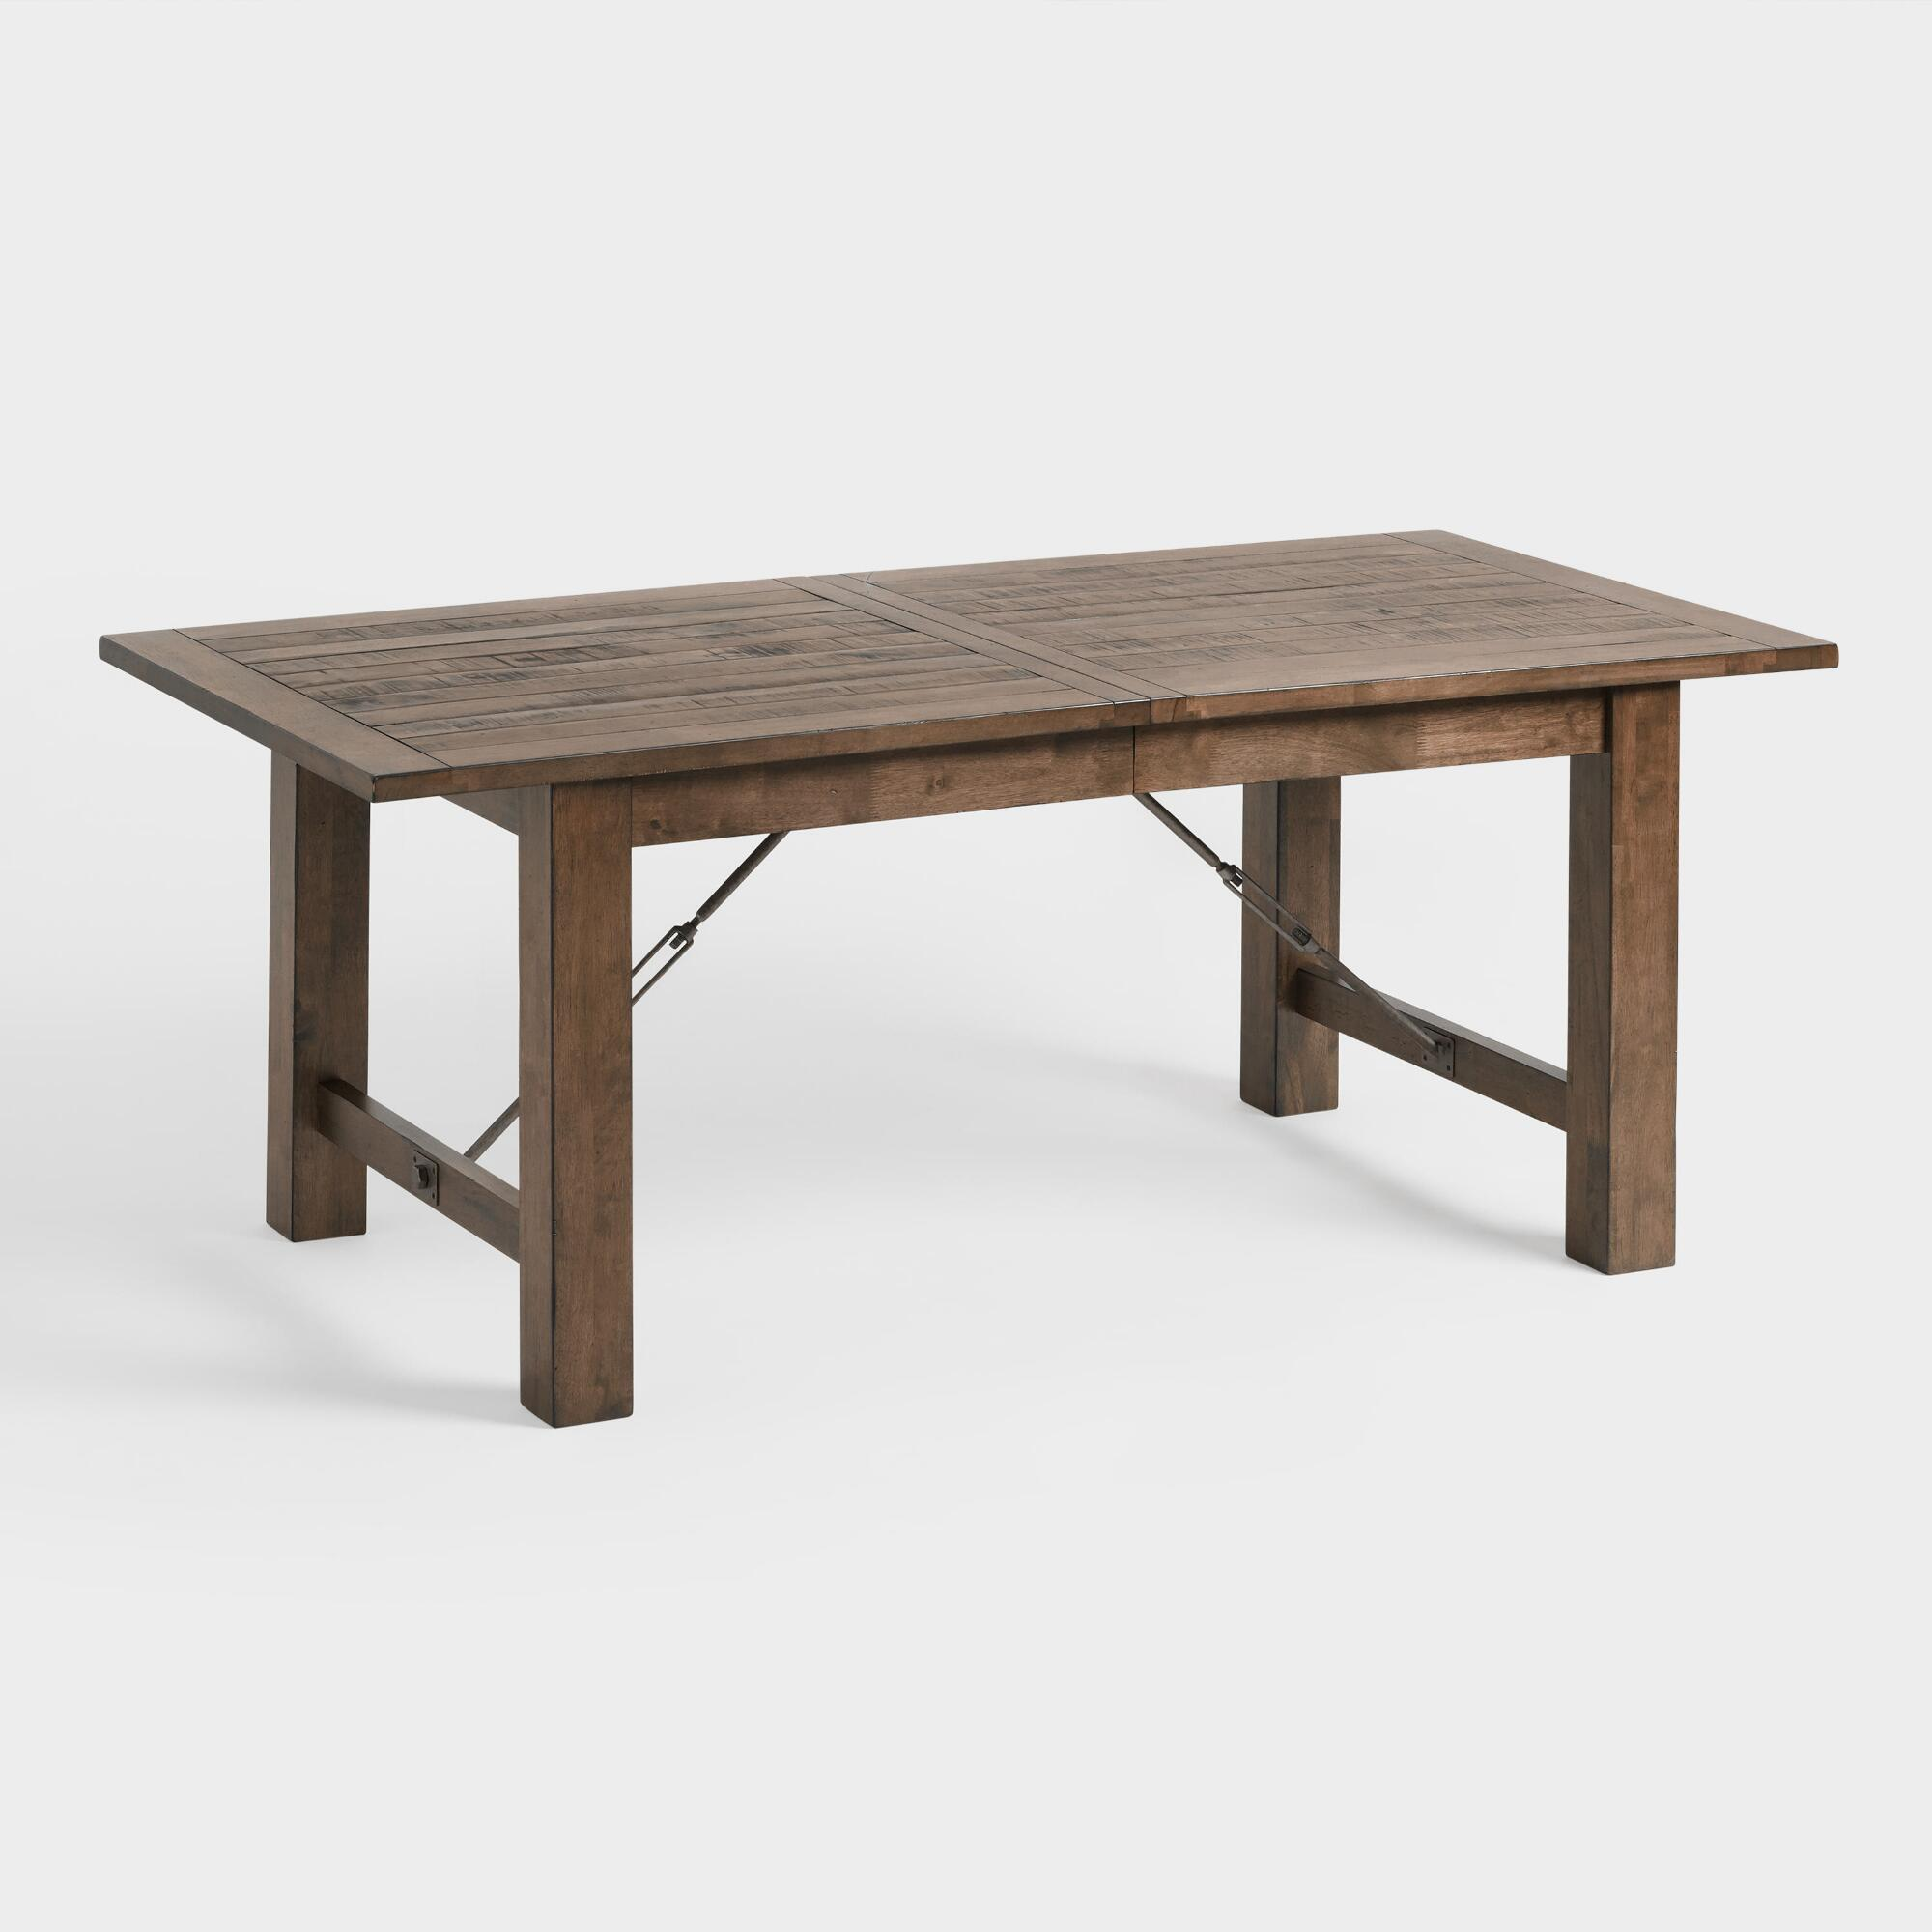 Dining Room Tables Rustic Wood Farmhouse Style World Market - Outdoor wood rectangular dining table